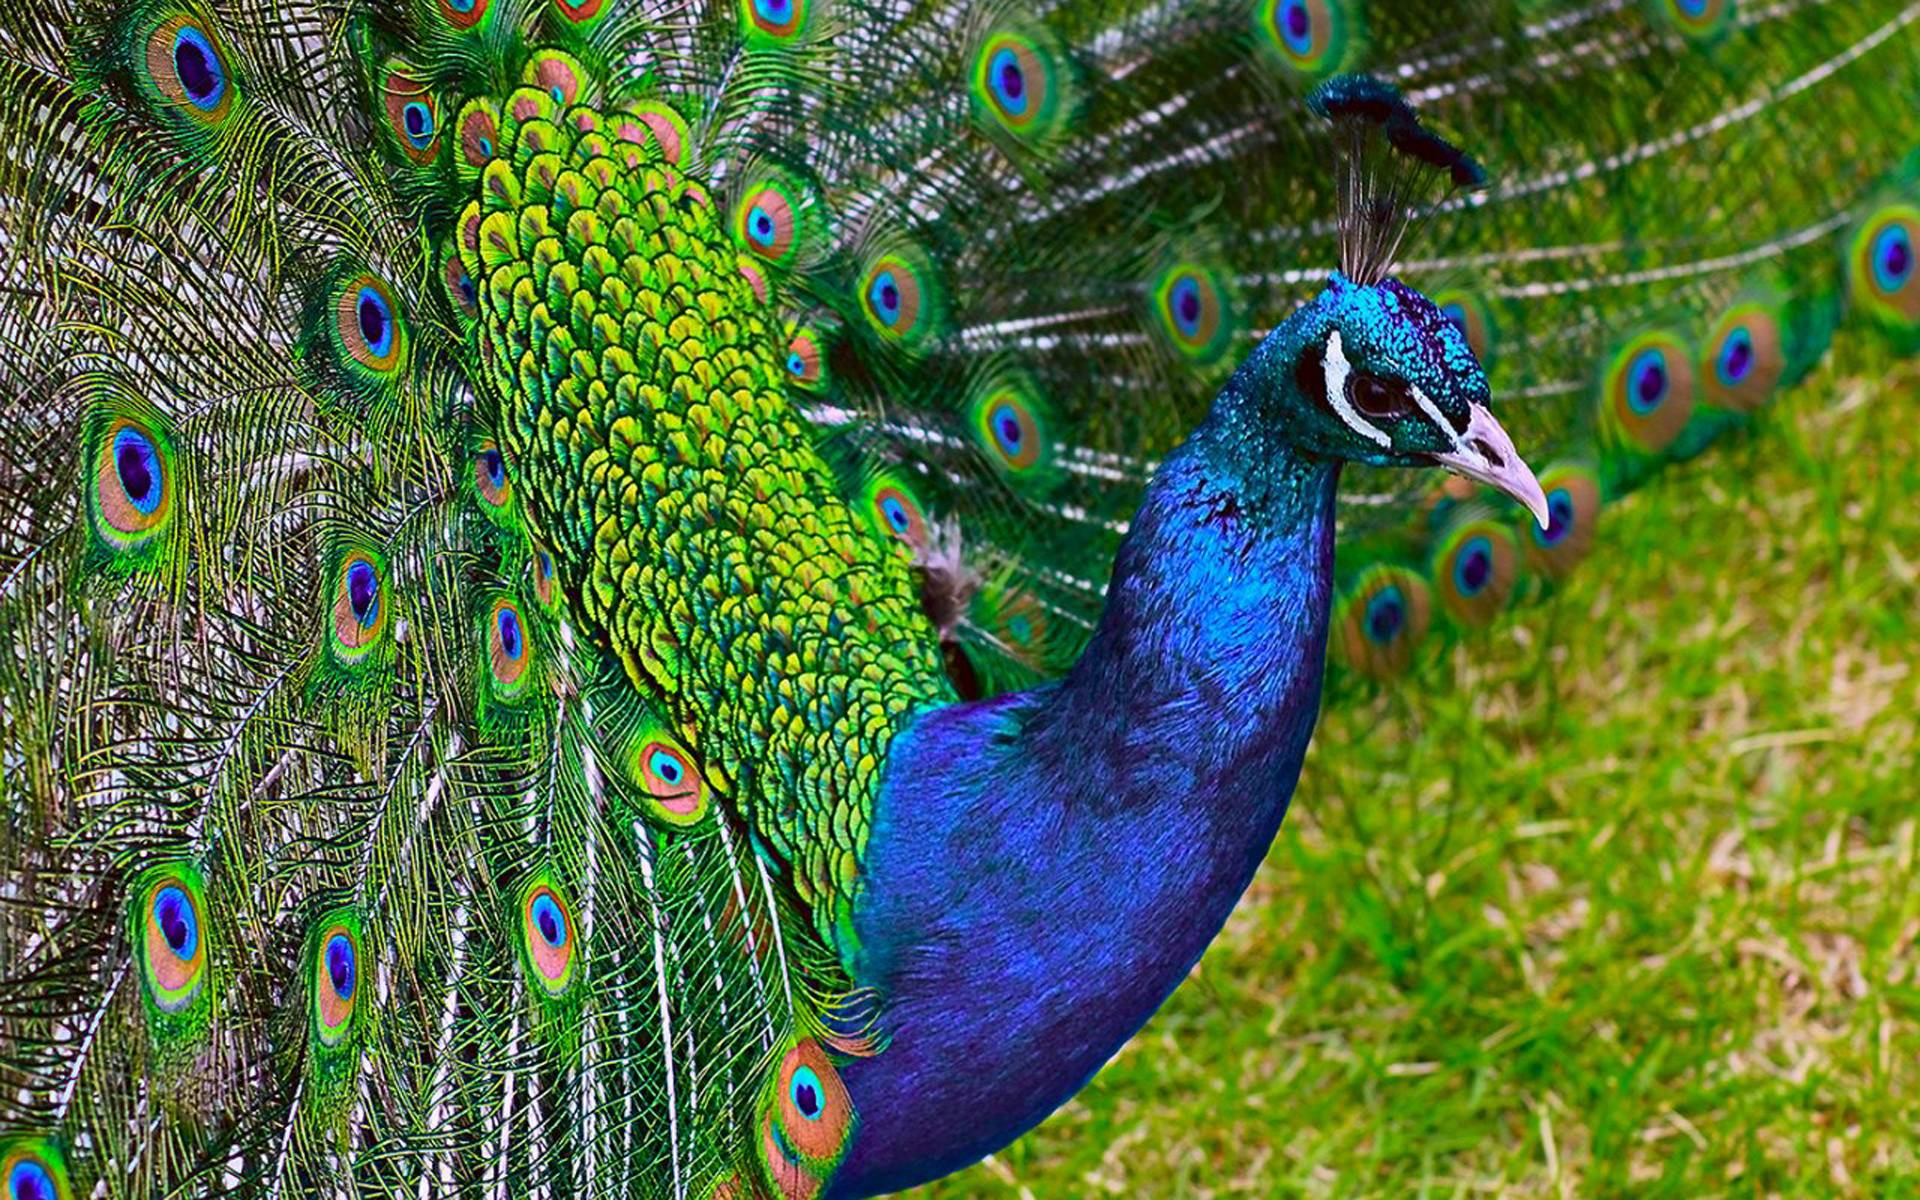 hd wallpapers of peacock